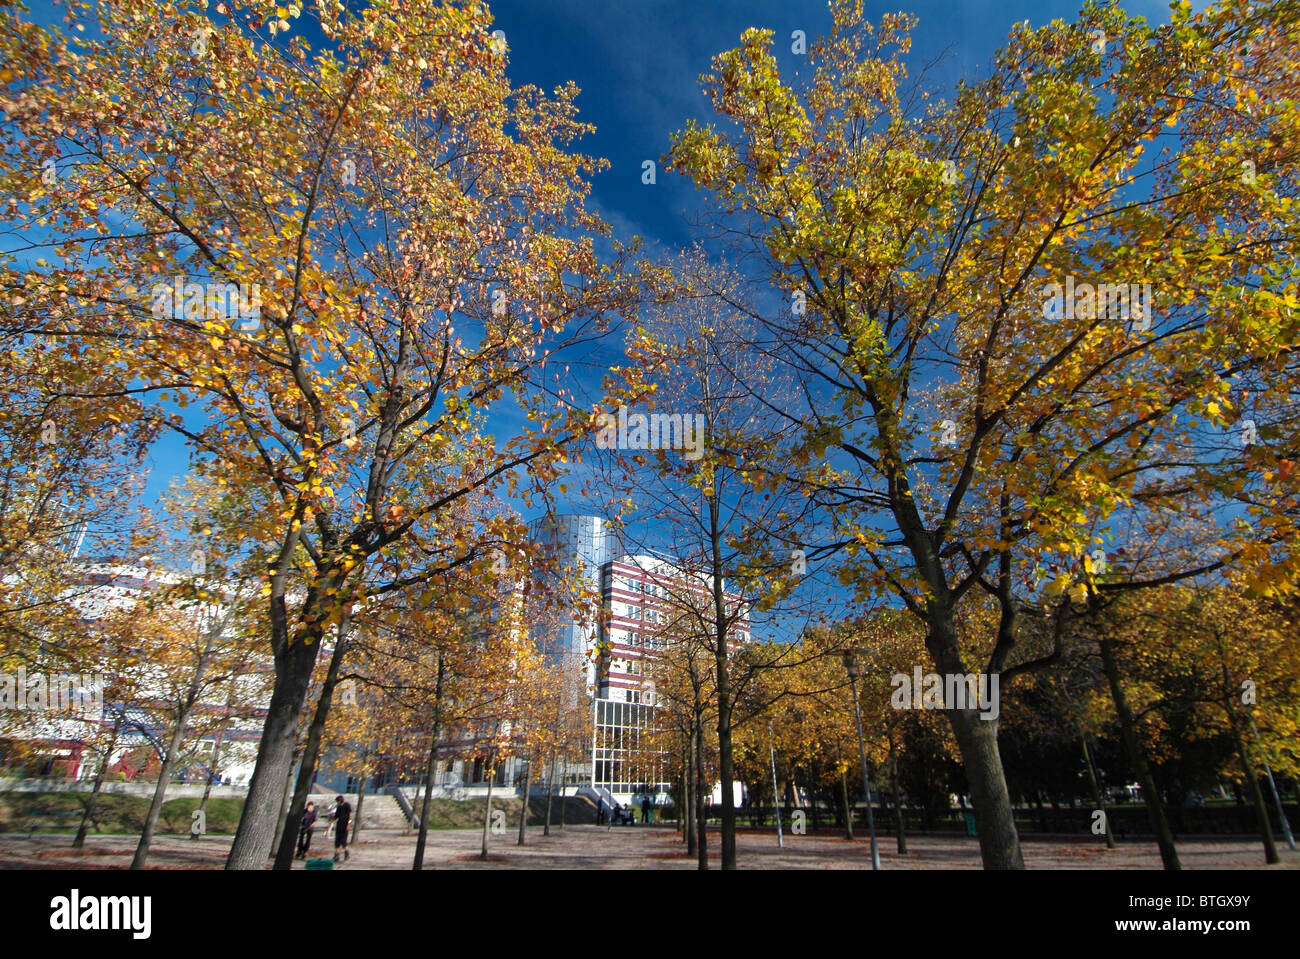 Park with trees near Bercy in downtown of Paris, capital of France - Stock Image